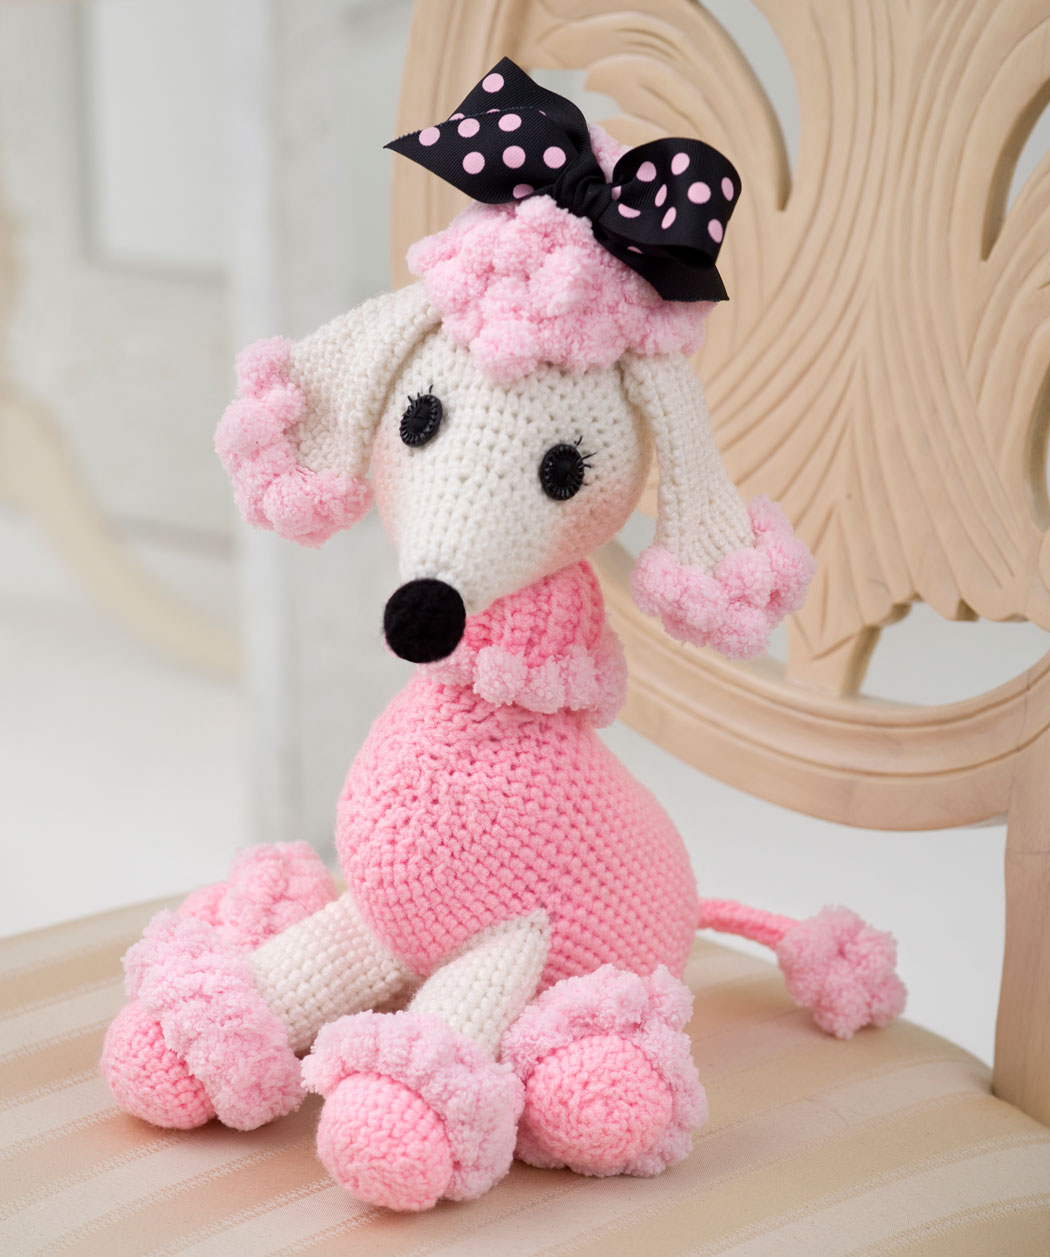 Marvelous Poodles to Knit and Crochet free patterns ...